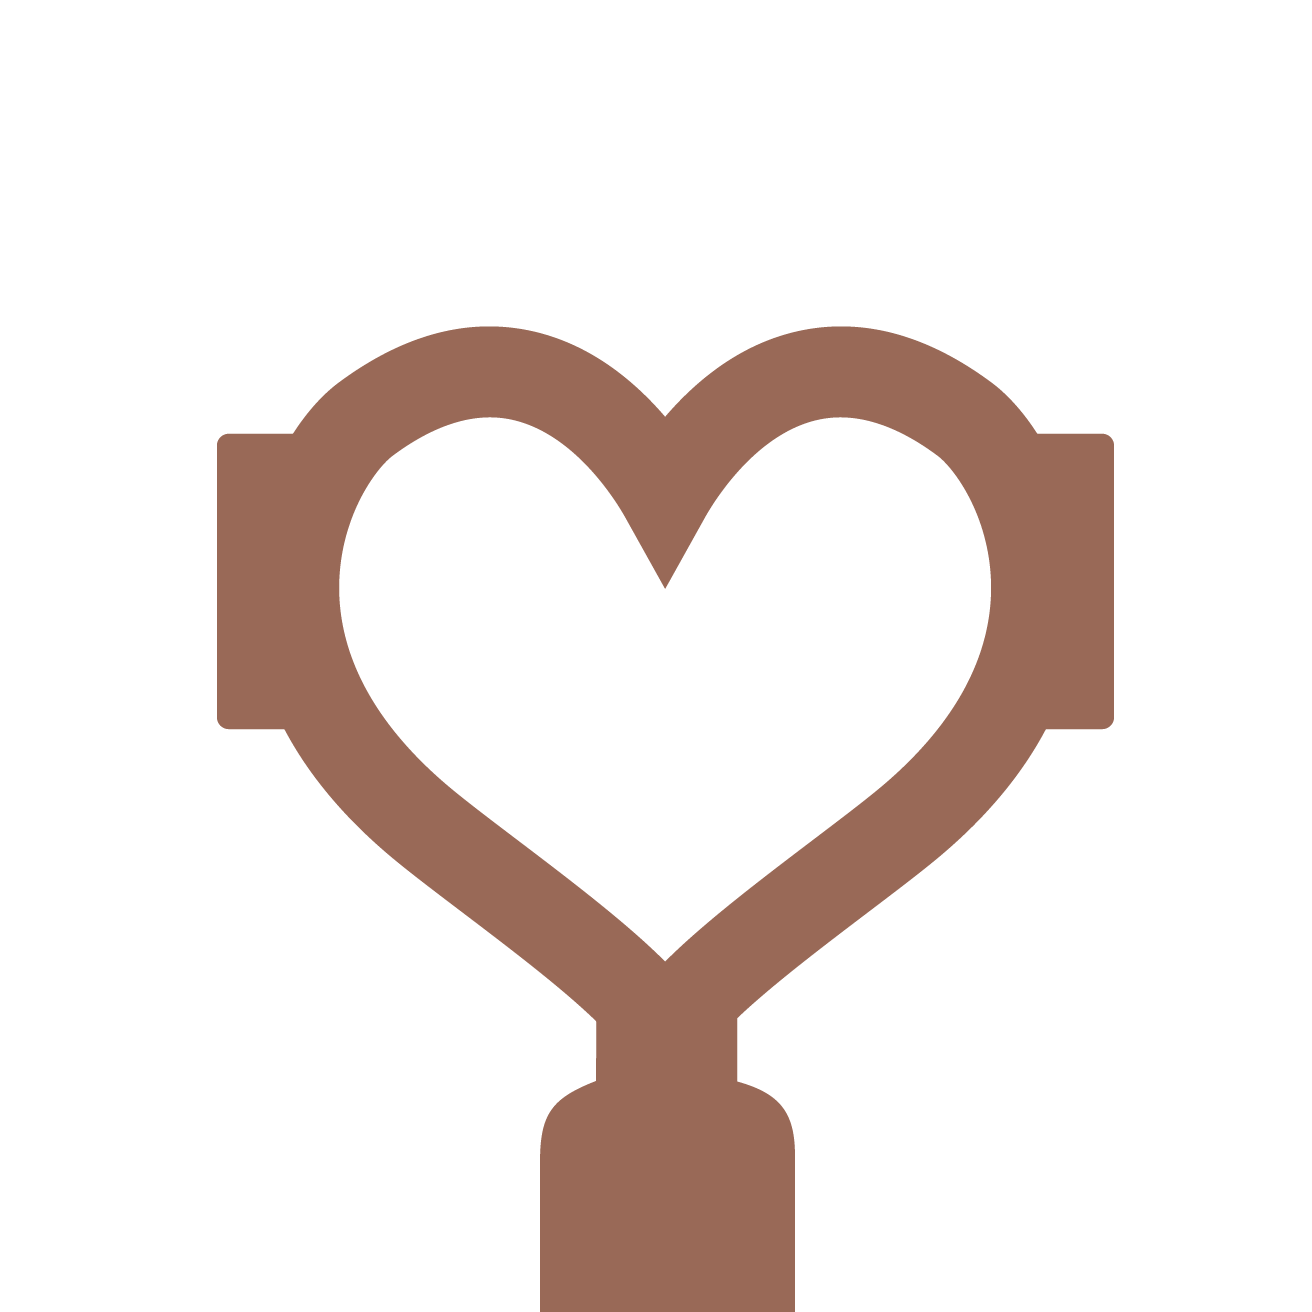 Moccamaster Technivorm KBG741 With Adjustable Filter Holder - Polished Silver with FREE 250g bag of Coffee